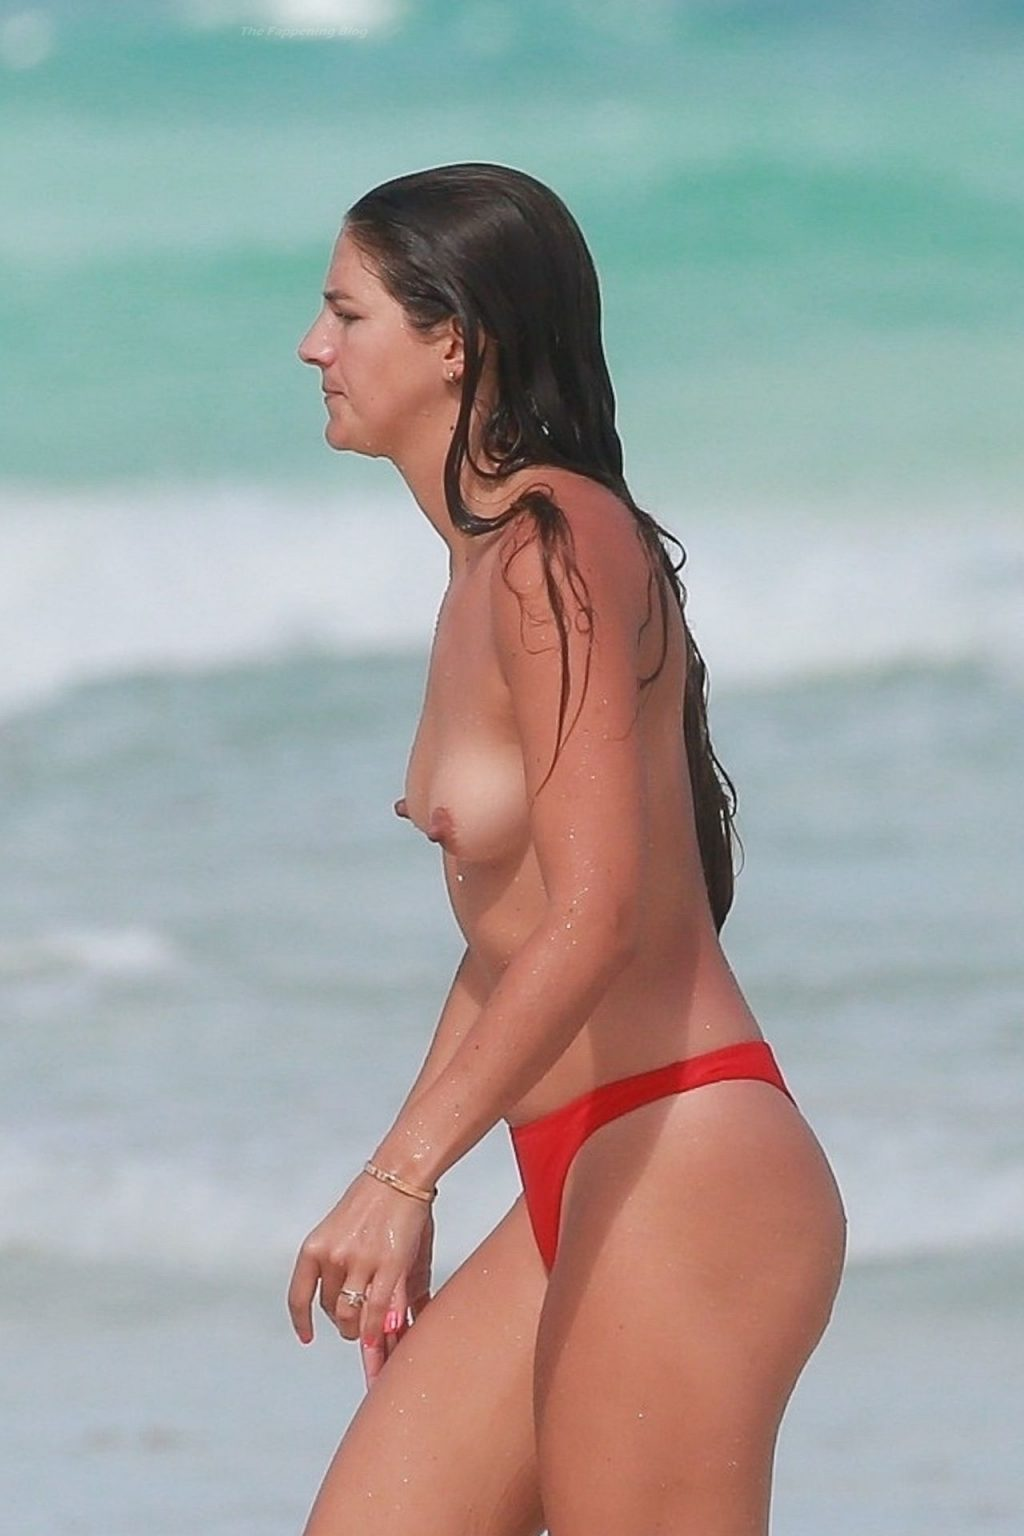 Nude Lucy Aragon Goes for a Dip in the Ocean While Out in Mexico (21 Photos)